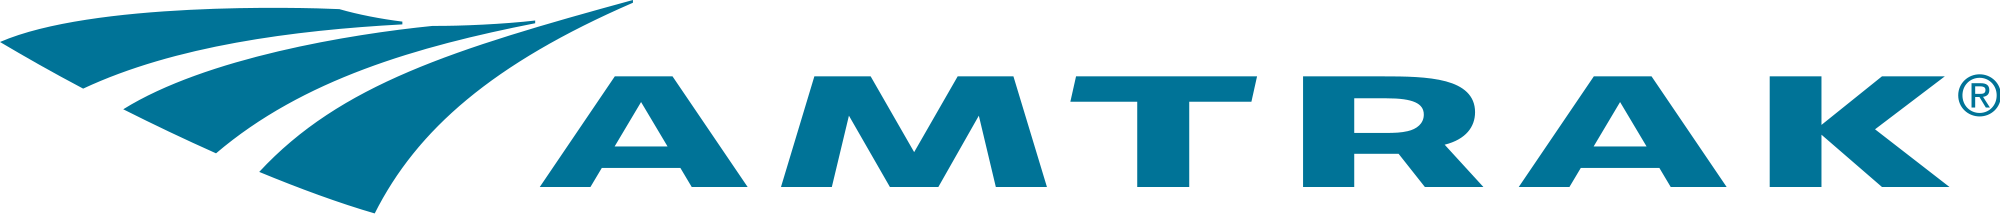 New_Amtrak_logo